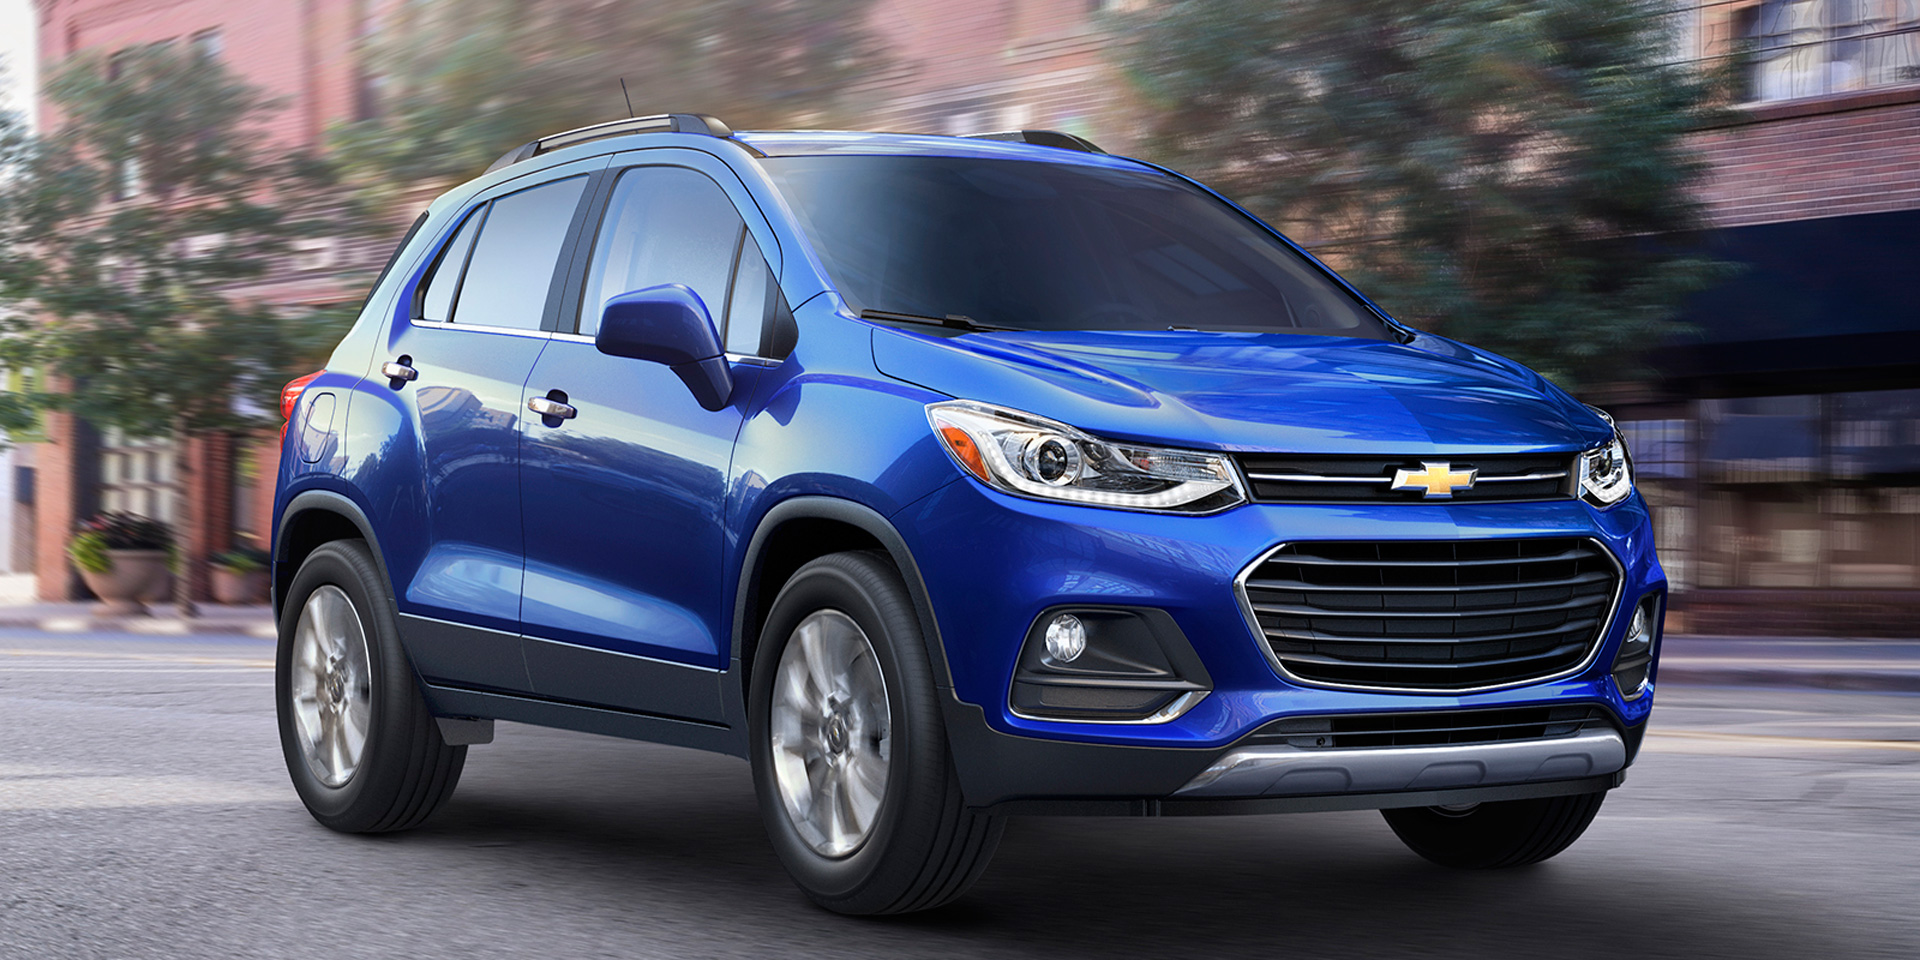 2018 - Chevrolet - Trax - Vehicles on Display | Chicago Auto Show